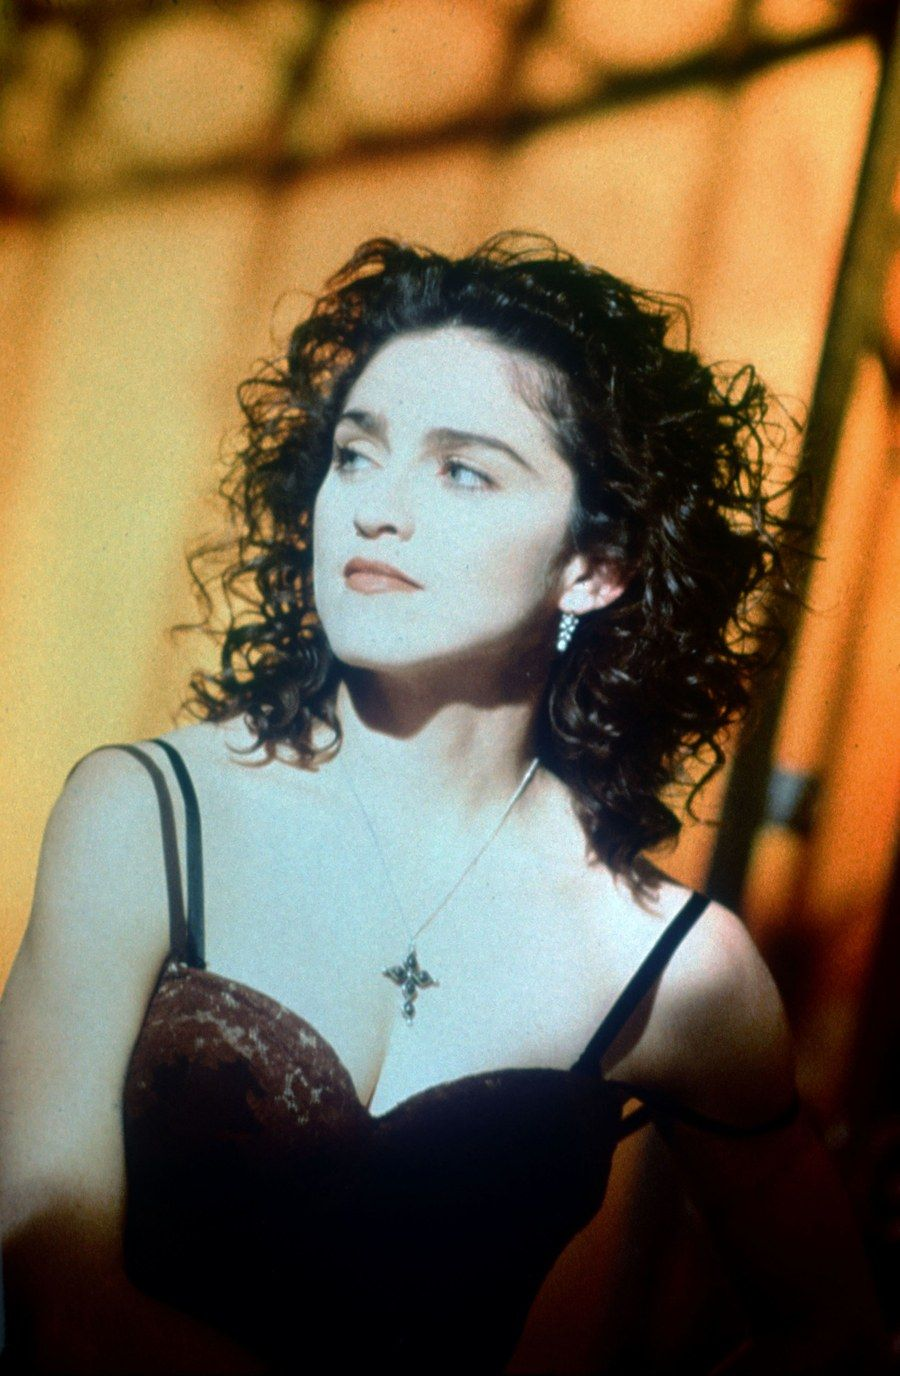 The story behind madonnaus slip dress in her most controversial